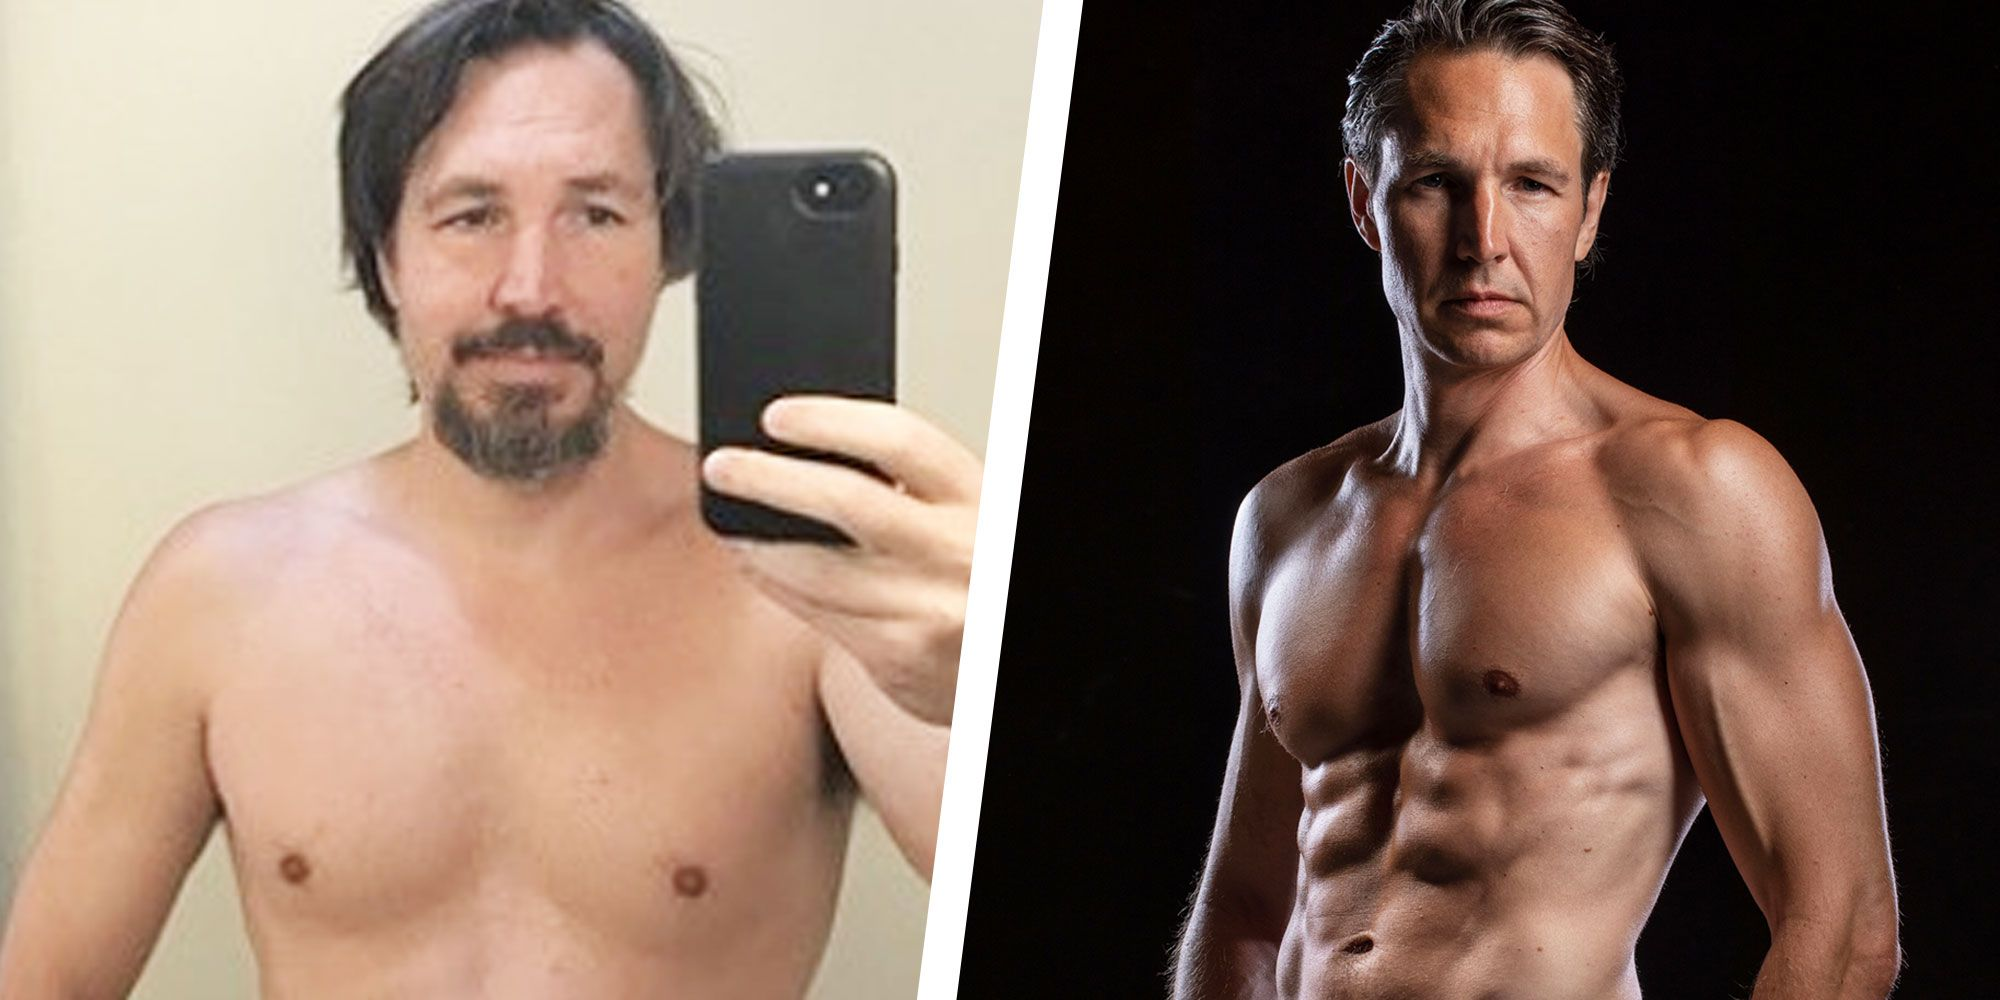 How This Guy Lost Weight and Got Shredded in His Forties on a Plant-Based Diet